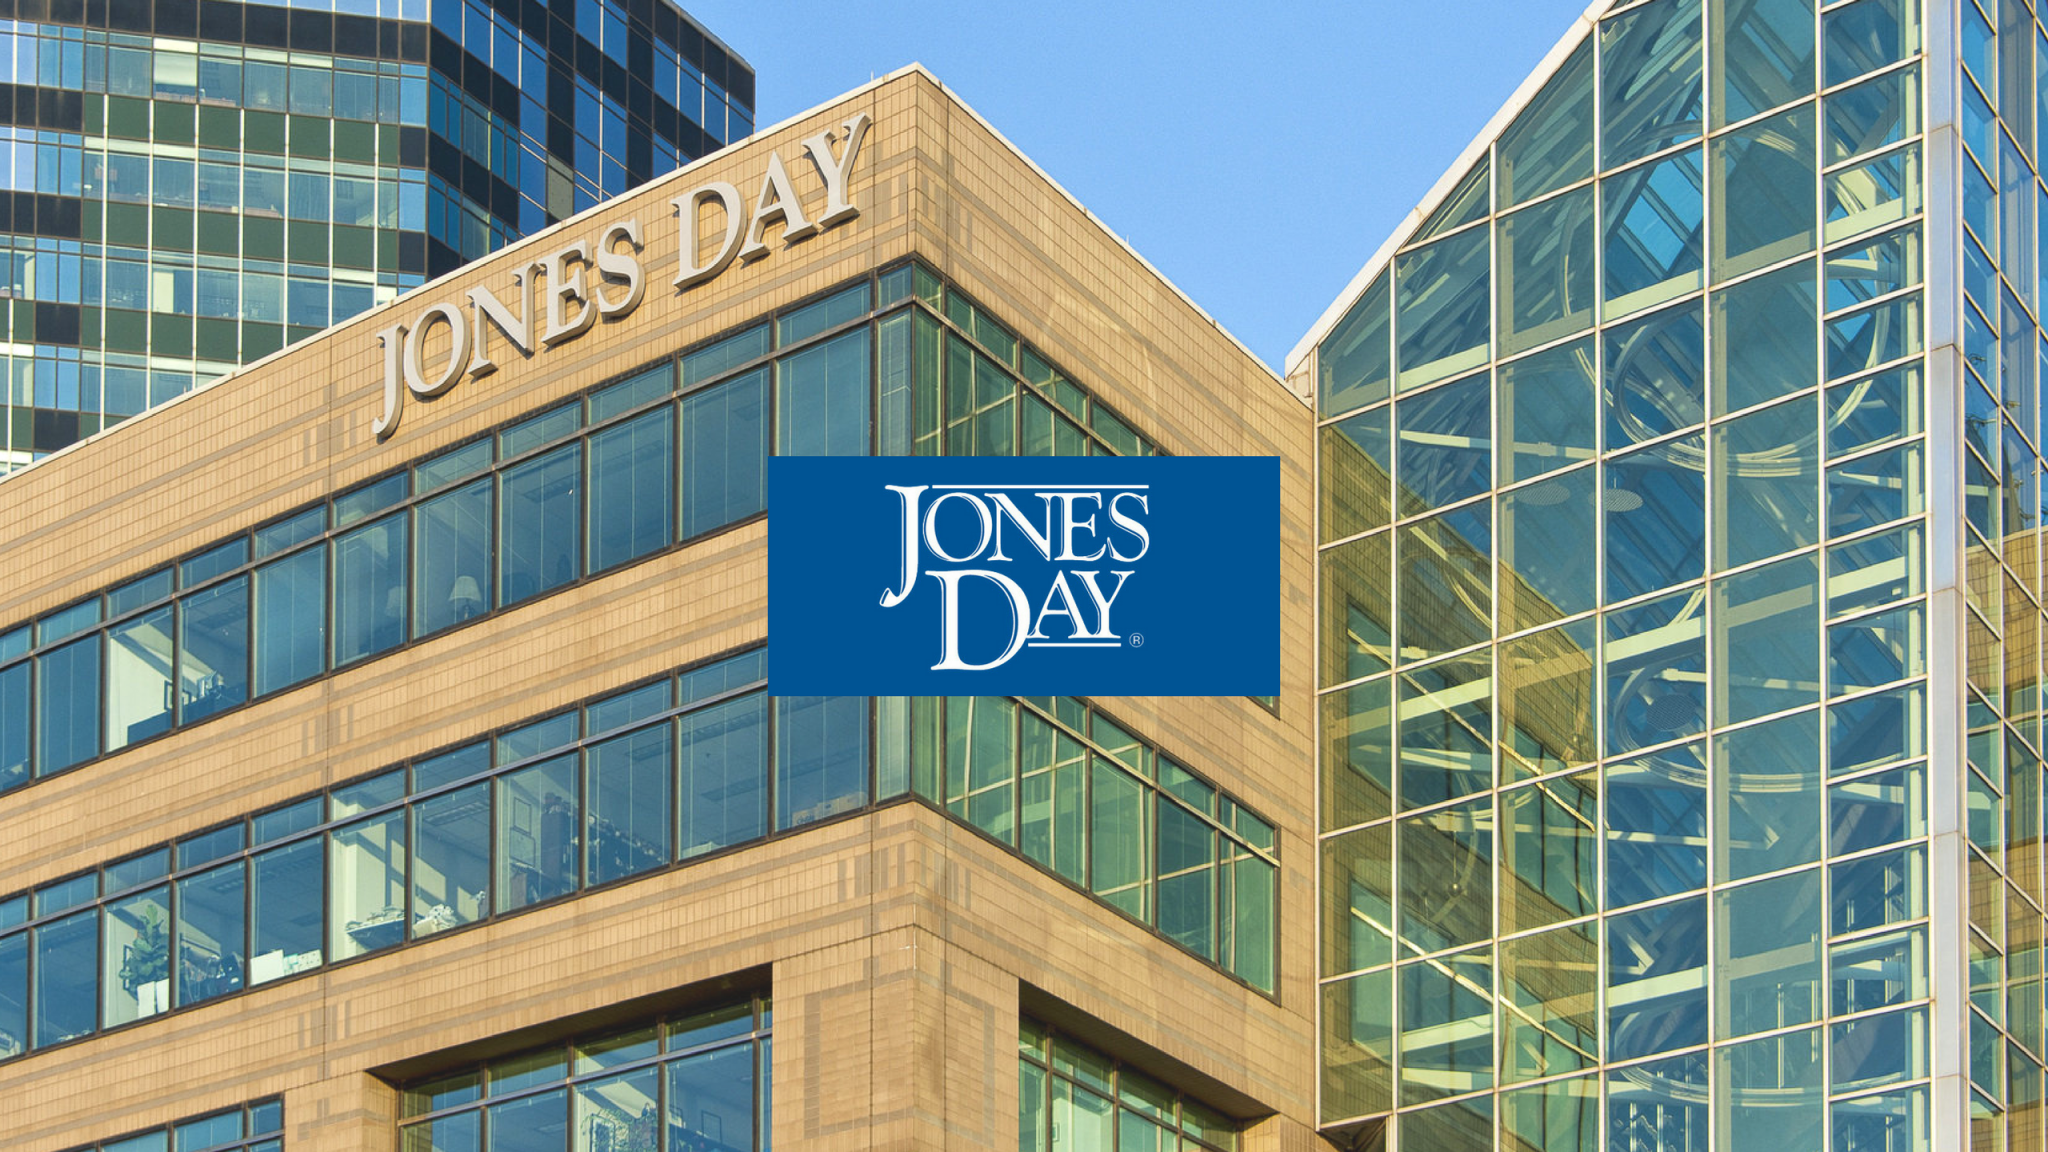 Jones Day Best Law Firms in the World UpSlide Top 50